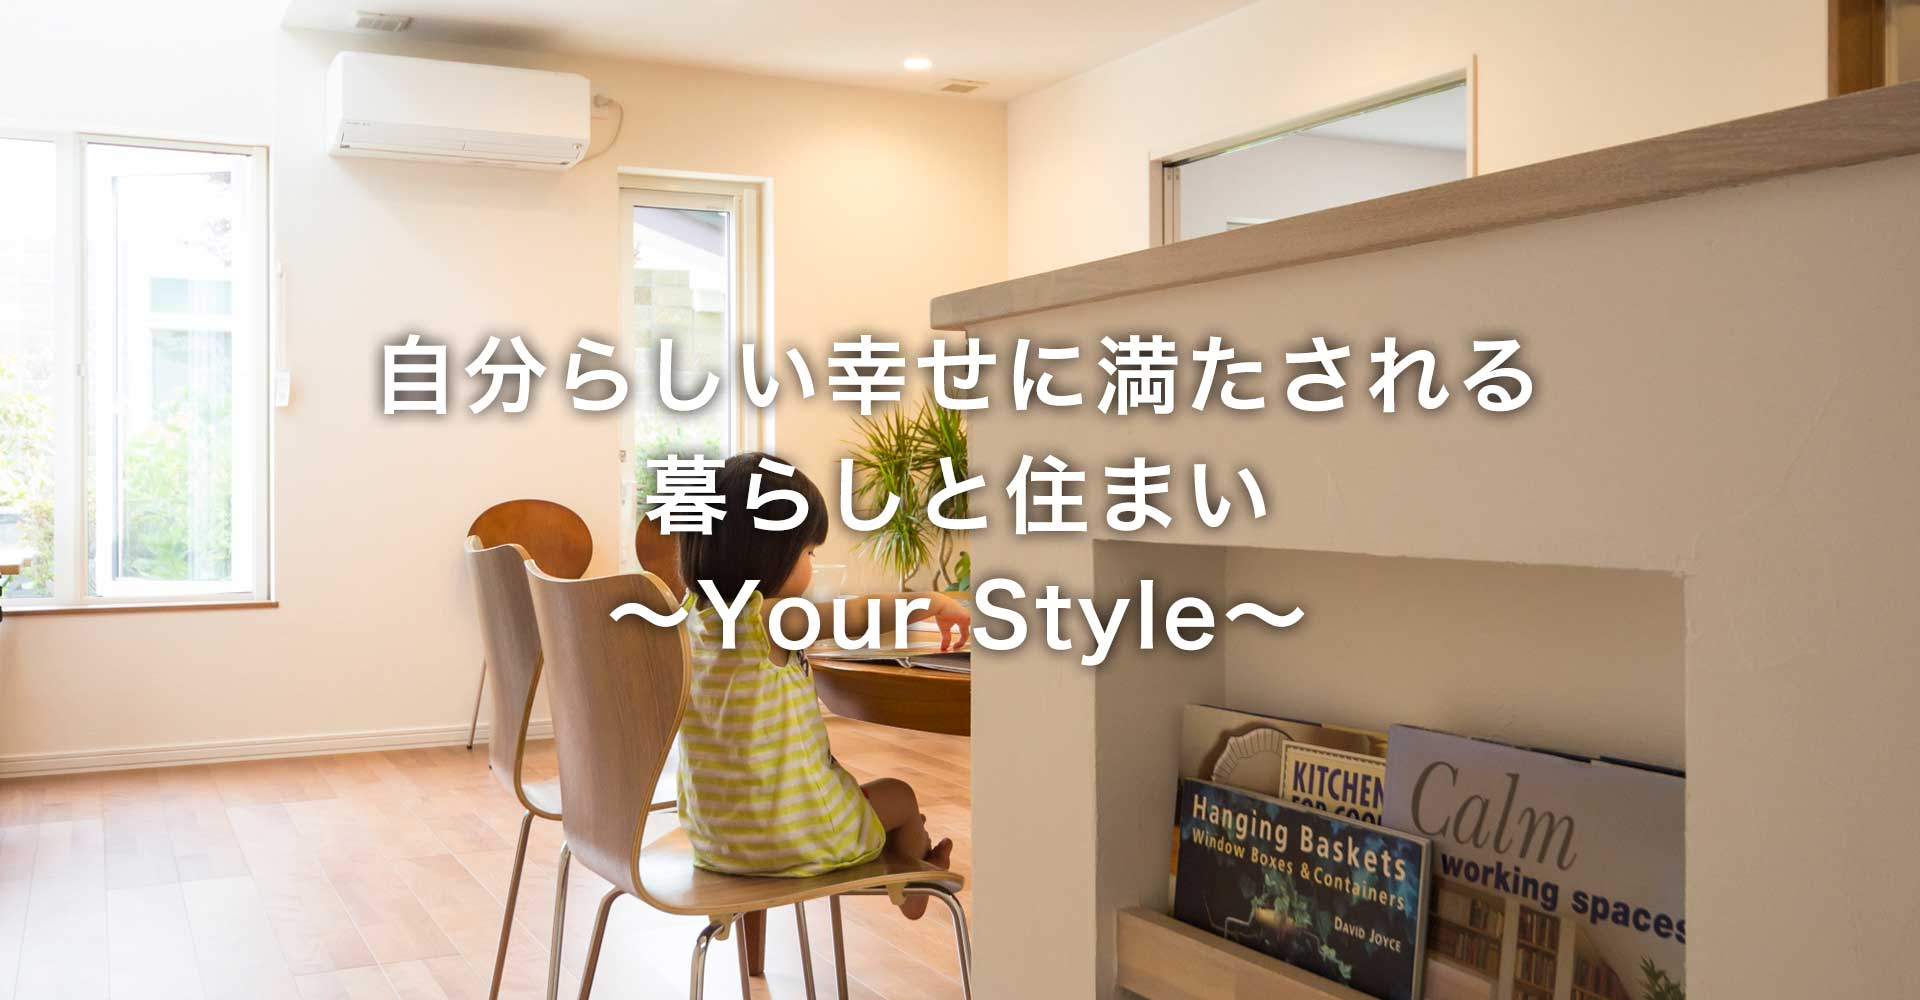 自分らしい幸せに満たされる 暮らしと住まい ~Your Style~